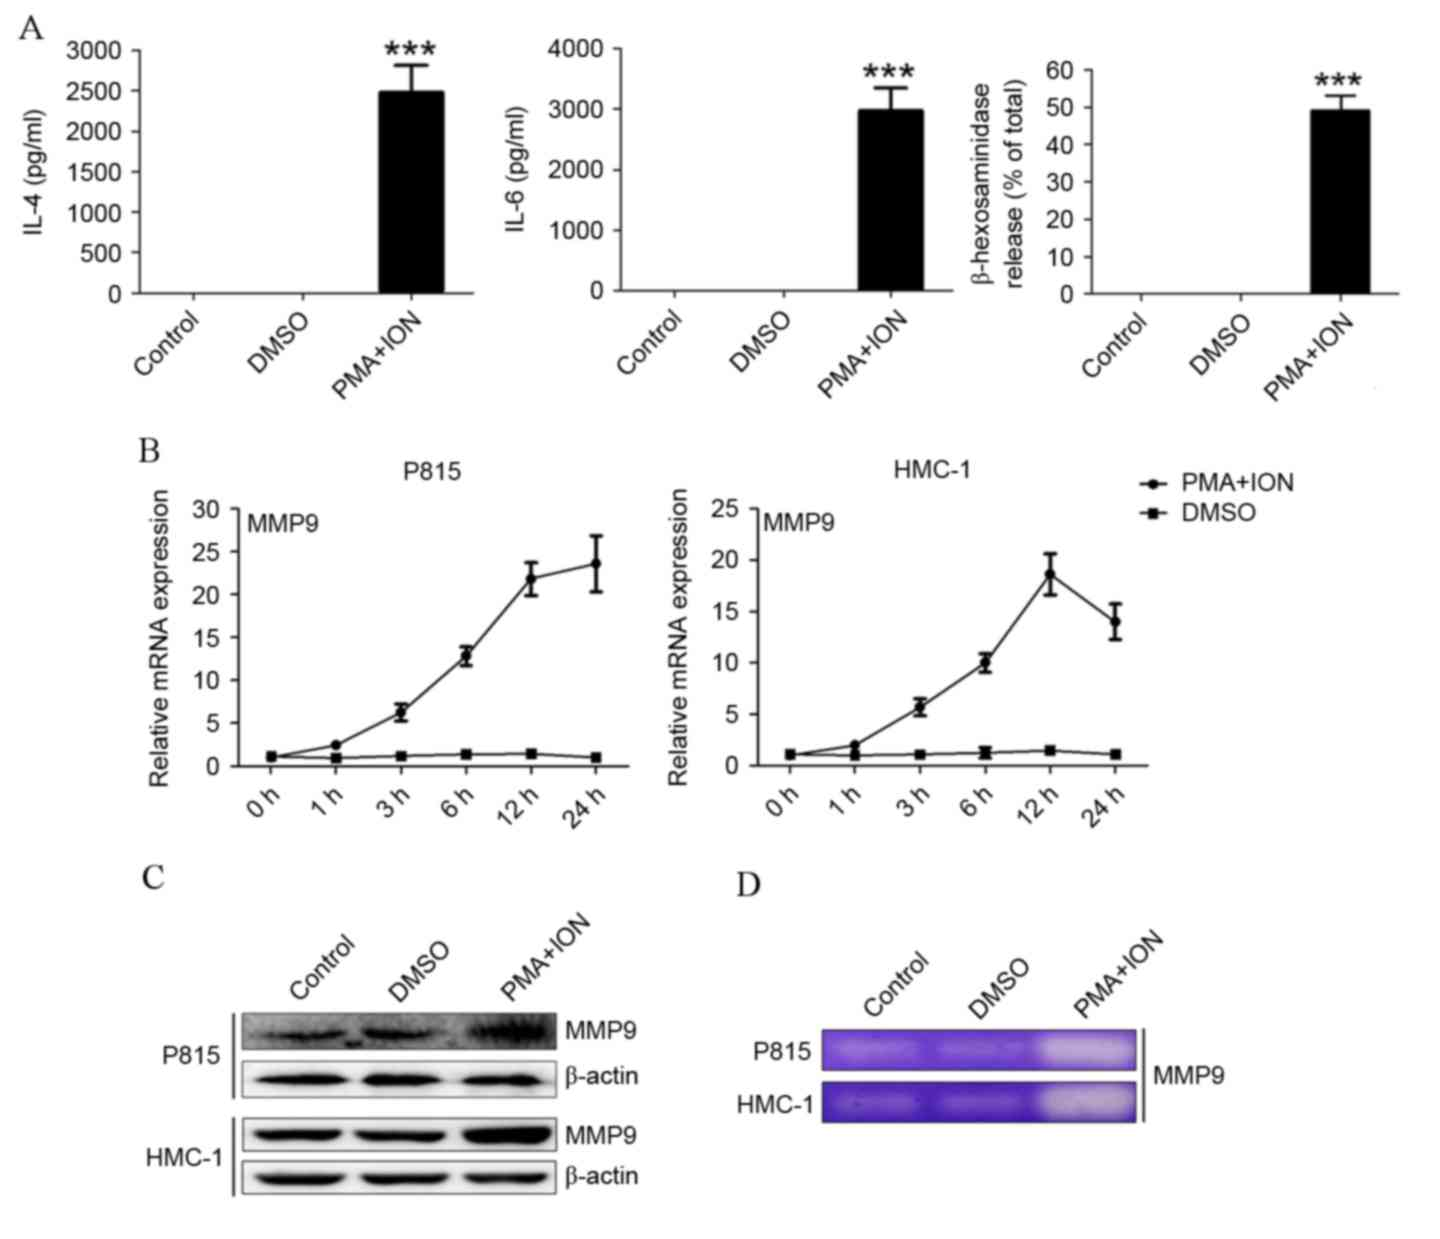 Activation‑induced upregulation of MMP9 in mast cells is a